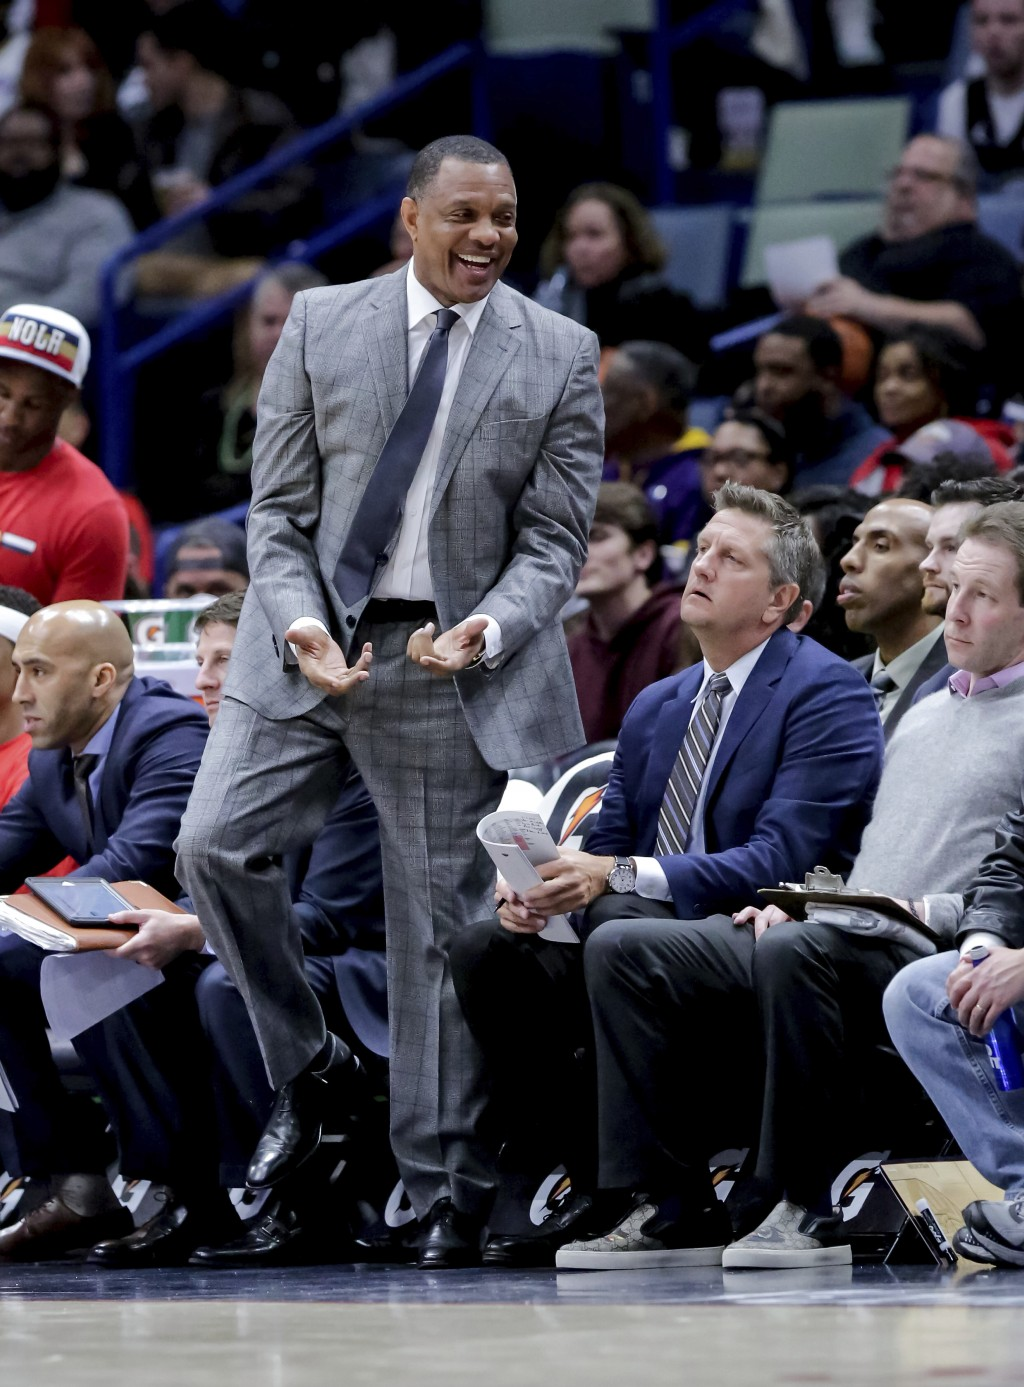 New Orleans Pelicans head coach Alvin Gentry reacts after a play against the Philadelphia 76ers in the first half of an NBA basketball game in New Orl